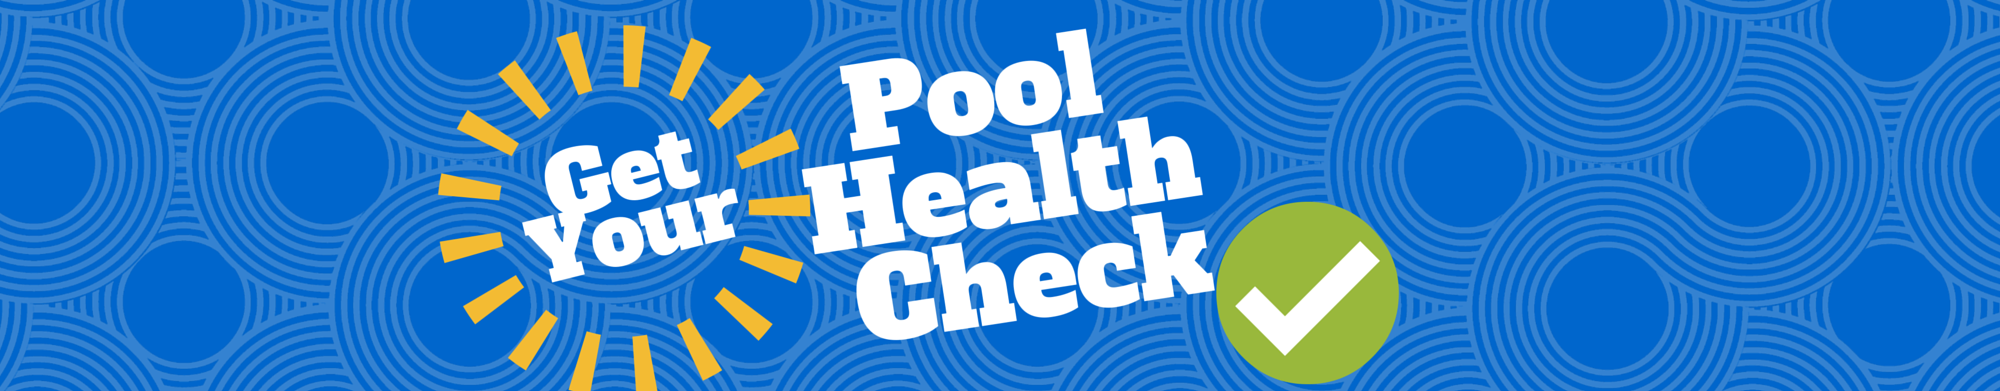 Pool Health Check (1).png